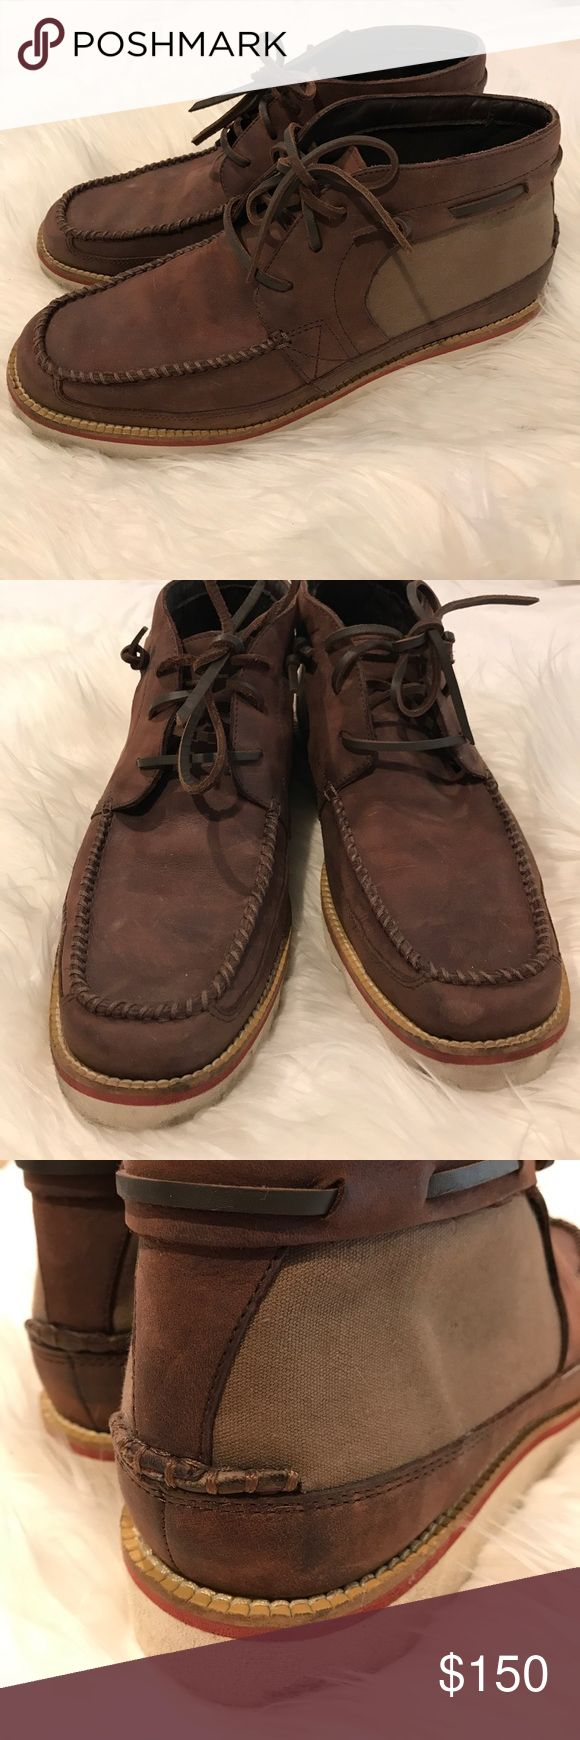 Men's Cole Haan Nike Collab Chukka Brown Boot 10 Only worn 1x! White sole has some dark marks and I will clean prior to shipping :) no box, all leather chukka style lace-up boot from Cole Haans collaboration with Nike = super comfortable! Retails $250+! Make an offer, fast shipping! Cole Haan Shoes Chukka Boots